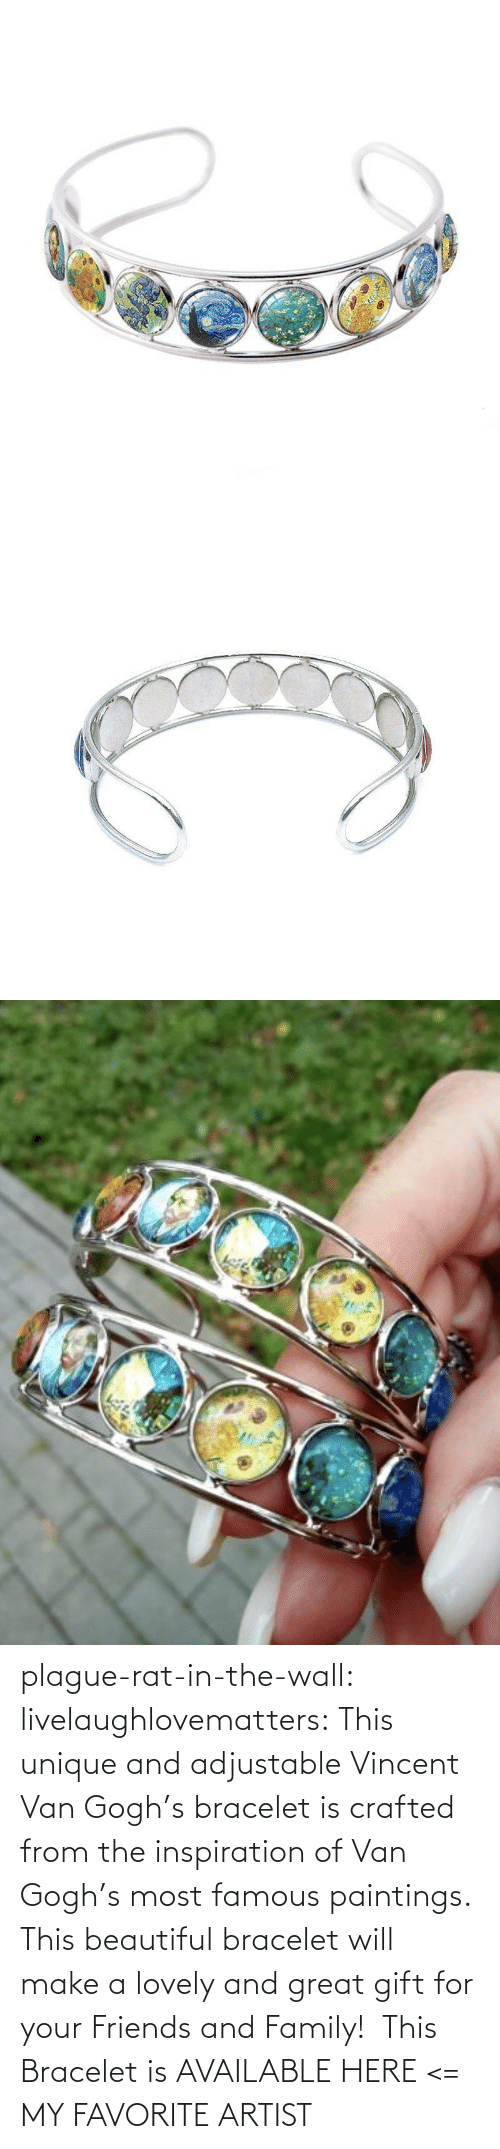 wall: plague-rat-in-the-wall:  livelaughlovematters: This unique and adjustable Vincent Van Gogh's bracelet is crafted from the inspiration of Van Gogh's most famous paintings. This beautiful bracelet will make a lovely and great gift for your Friends and Family!  This Bracelet is AVAILABLE HERE <=  MY FAVORITE ARTIST